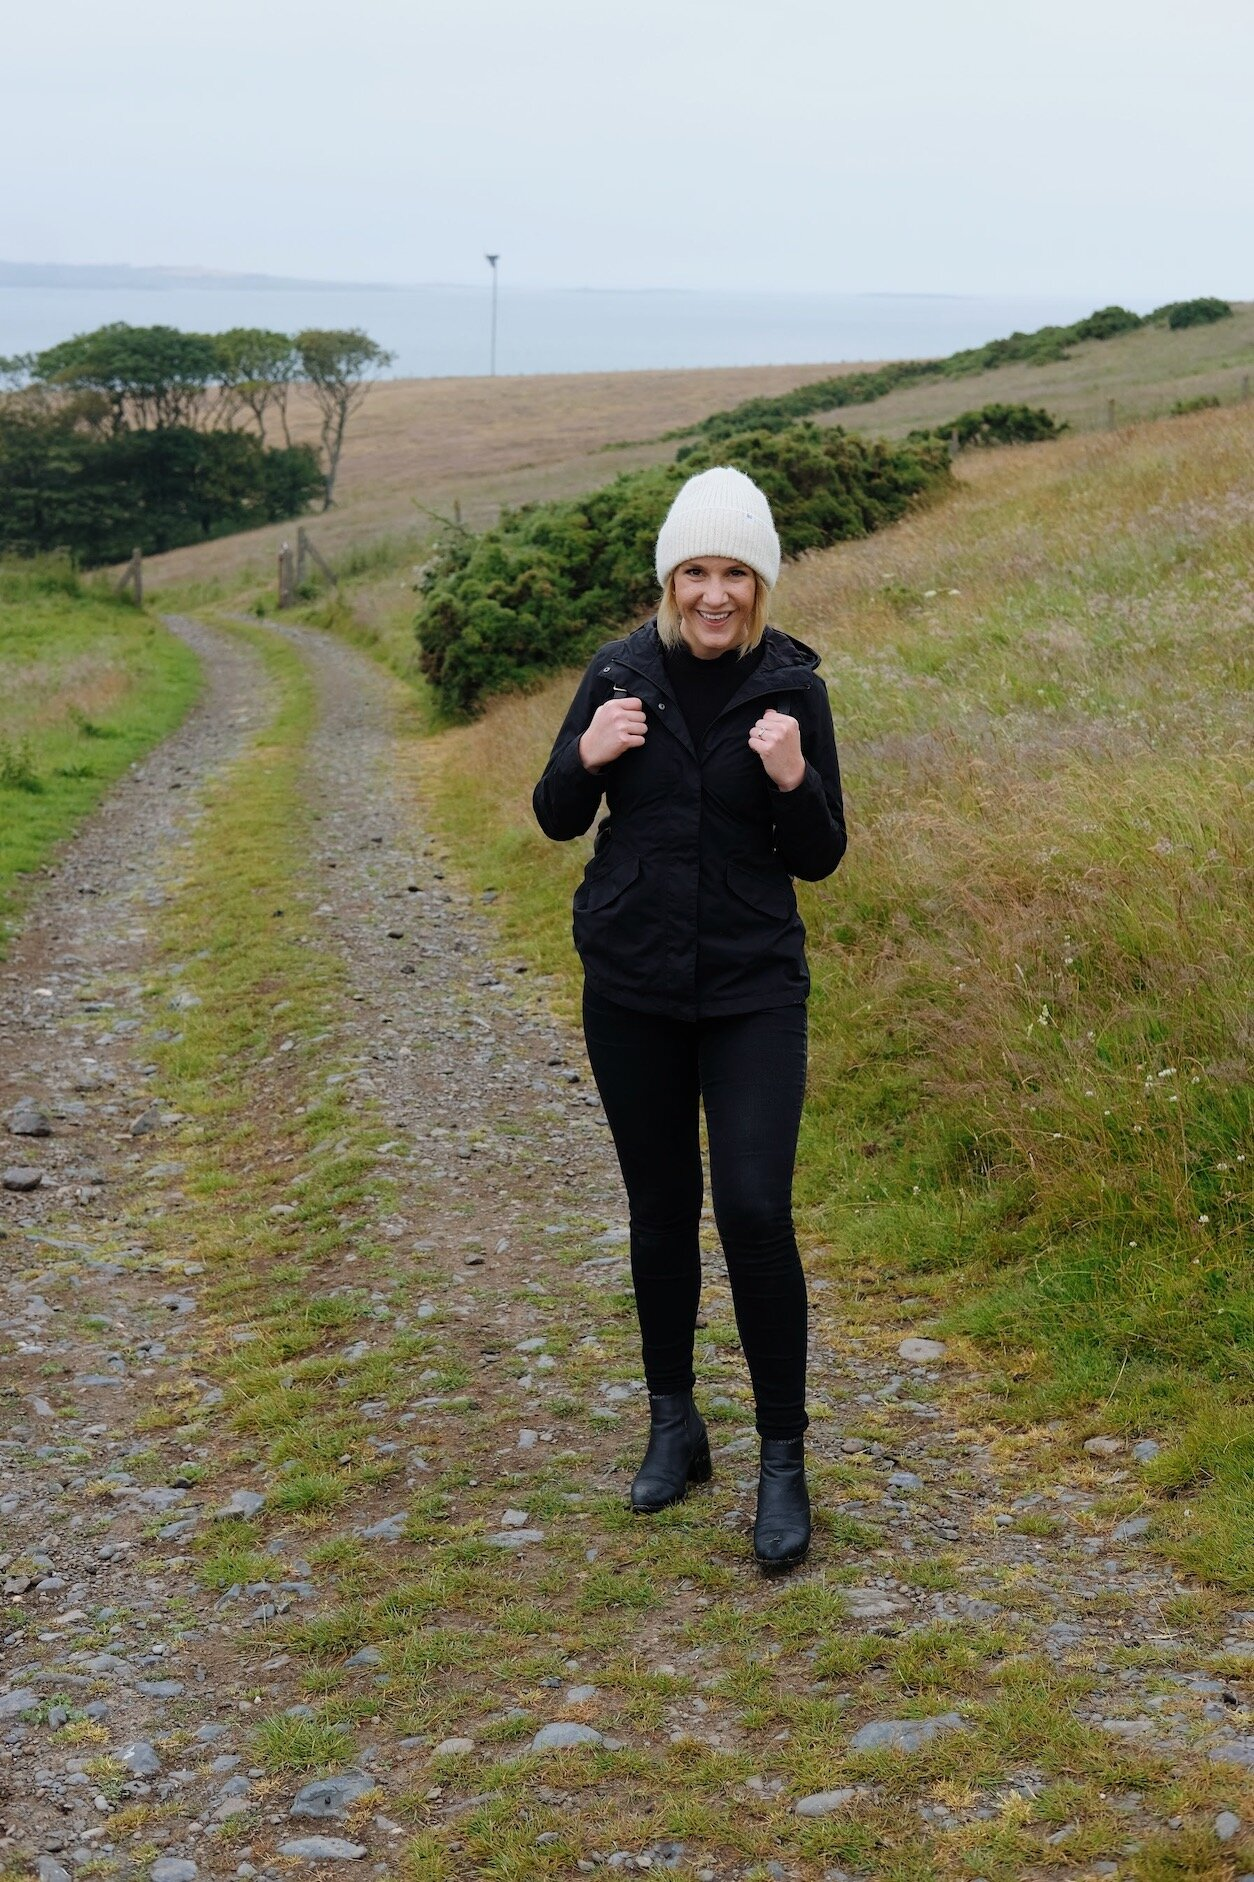 Stylish hiking outfit // A Week Of Minimalist Travel Outfits With Ellie Hughes From Selflessly Styled on The Good Trade